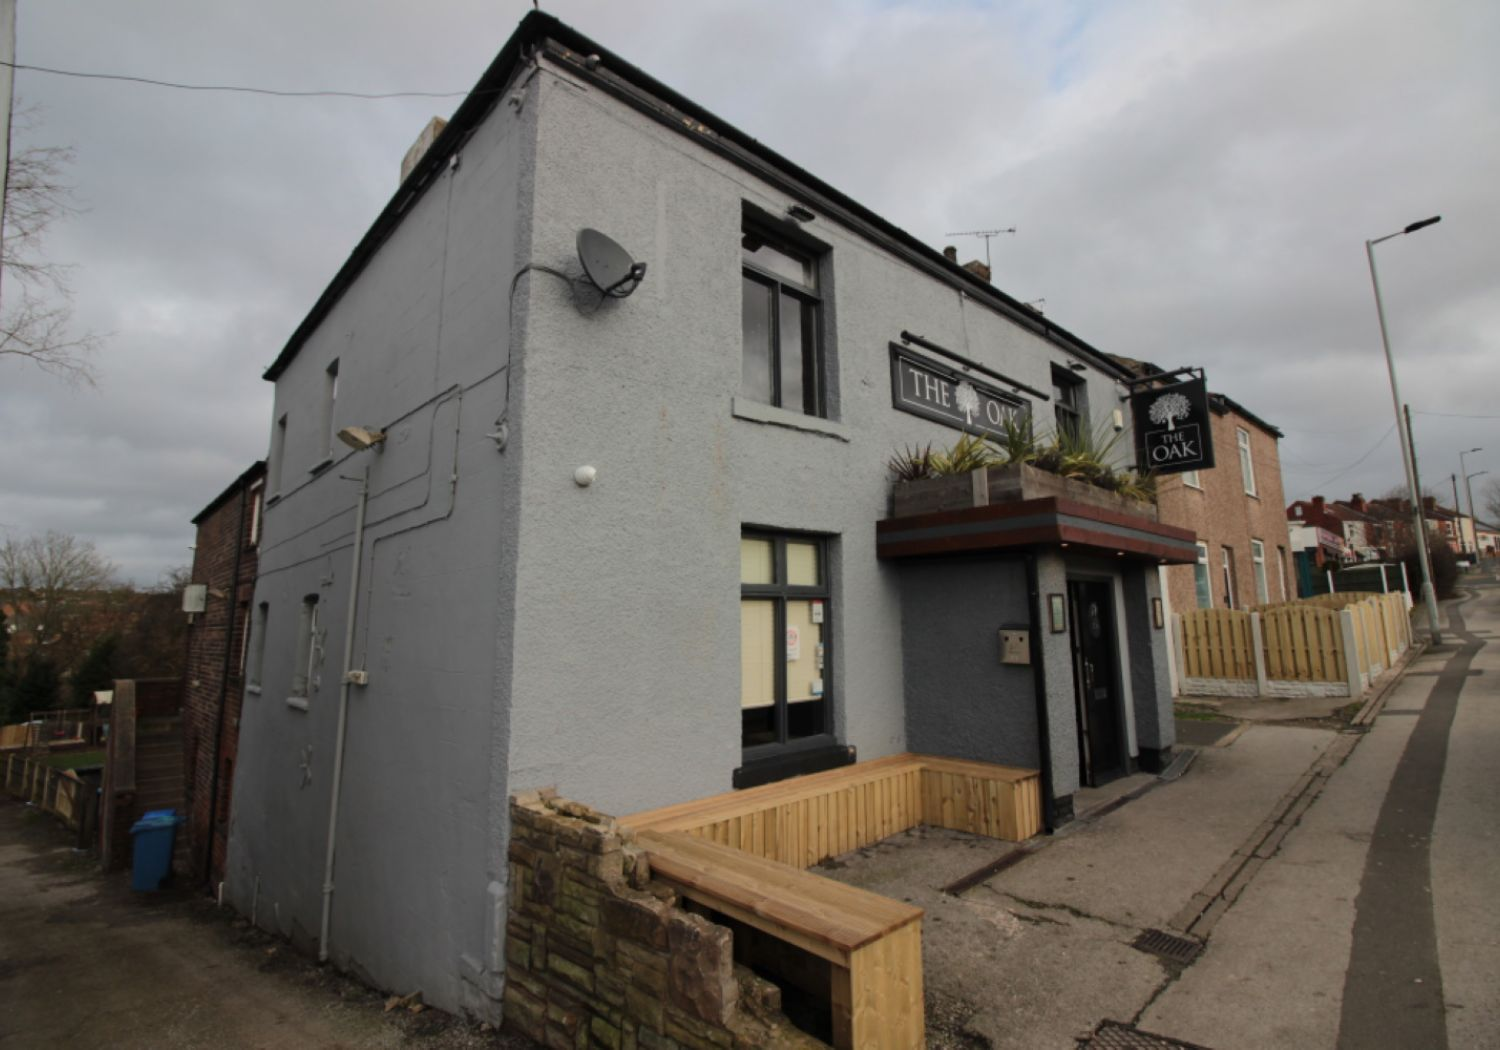 Freehold public house for sale with potential development land.